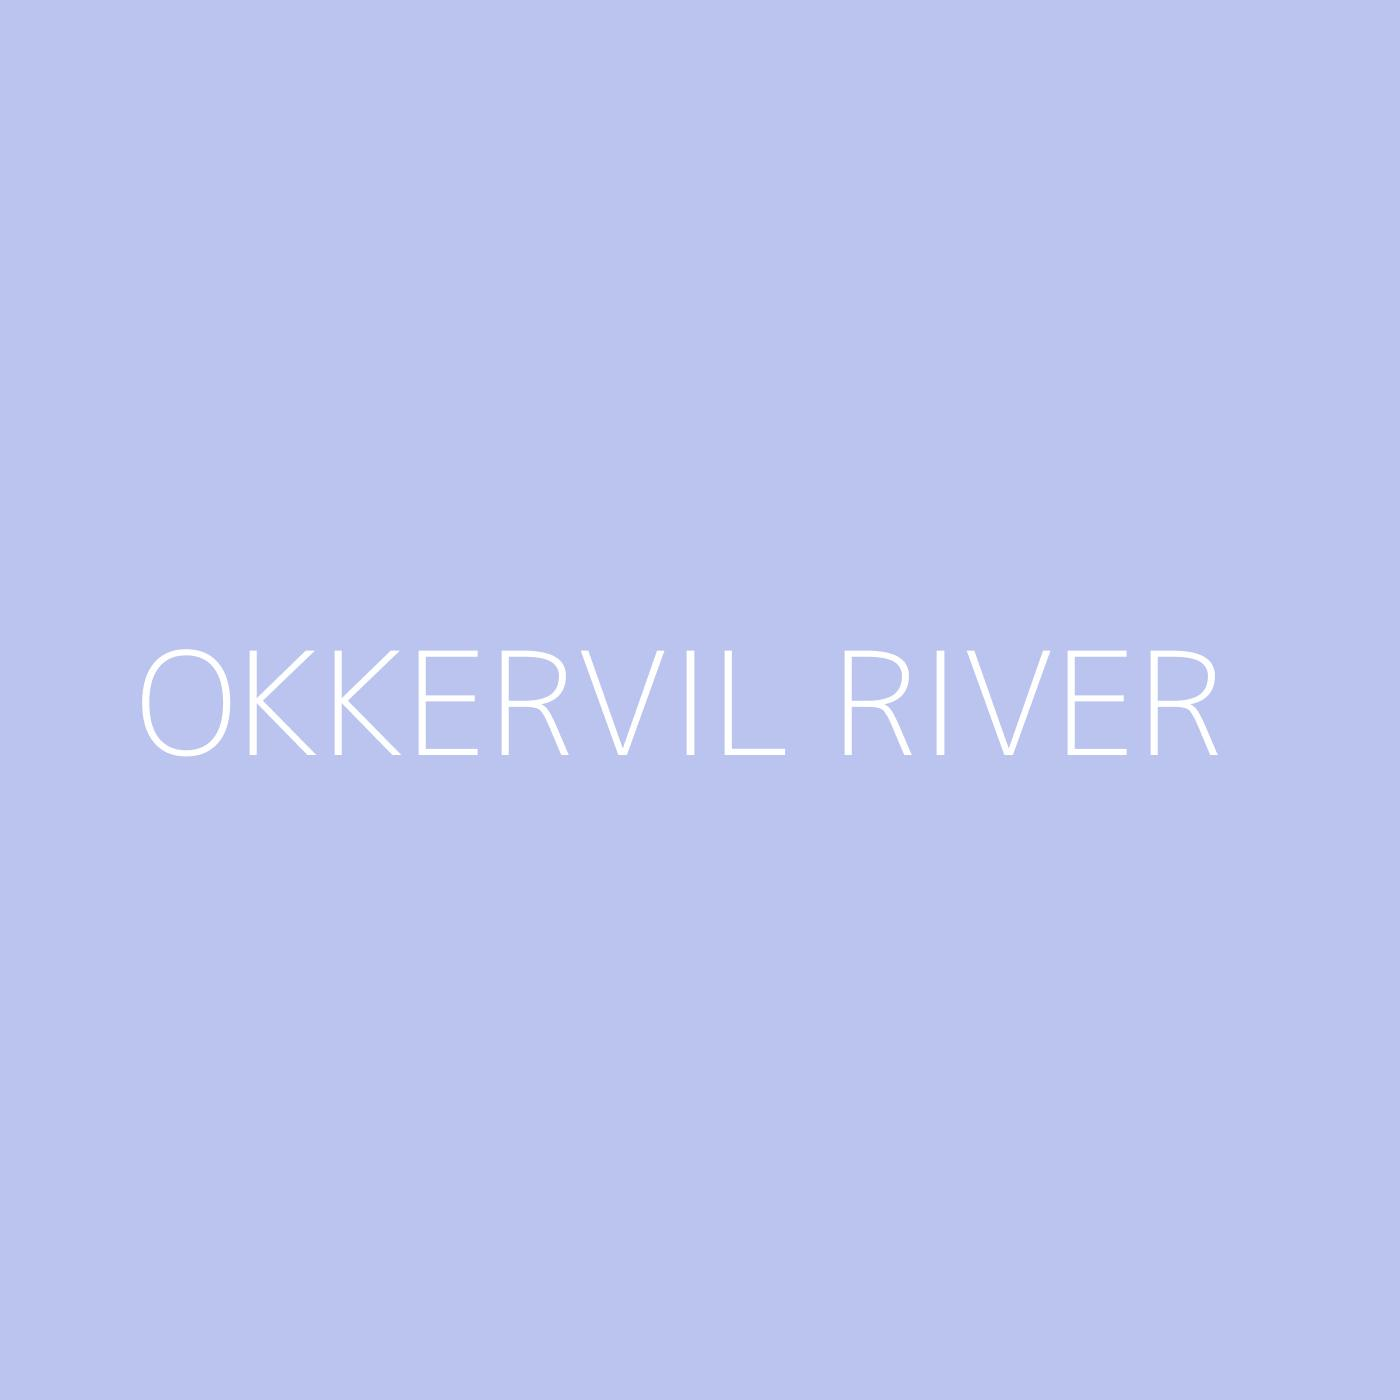 Okkervil River Playlist Artwork